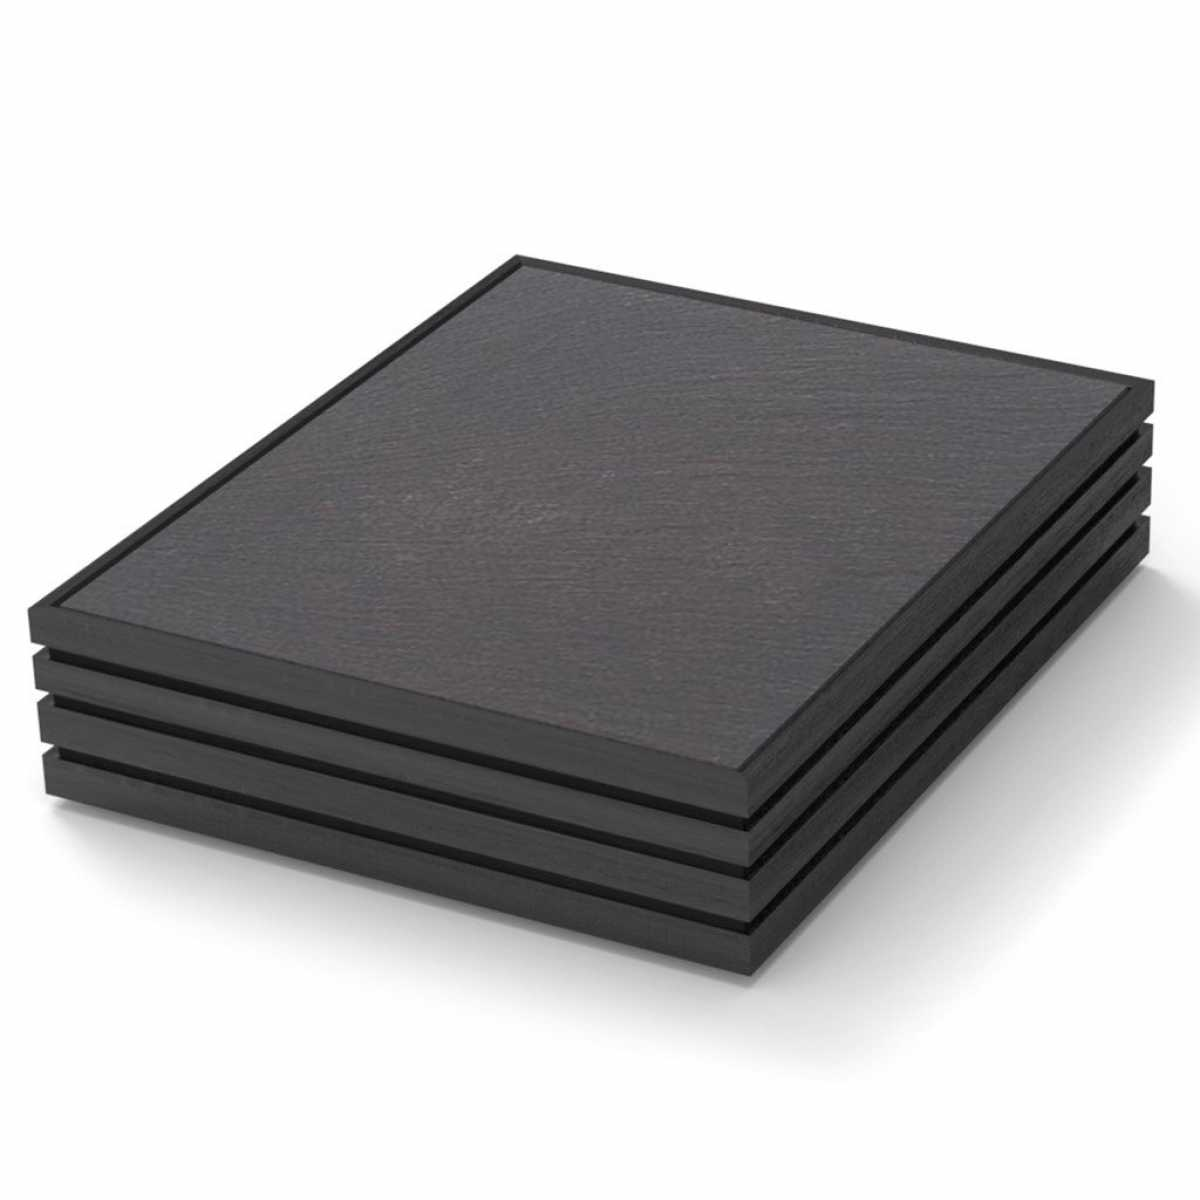 CRASTER Flow Black Slate Cooling Tray 1.2